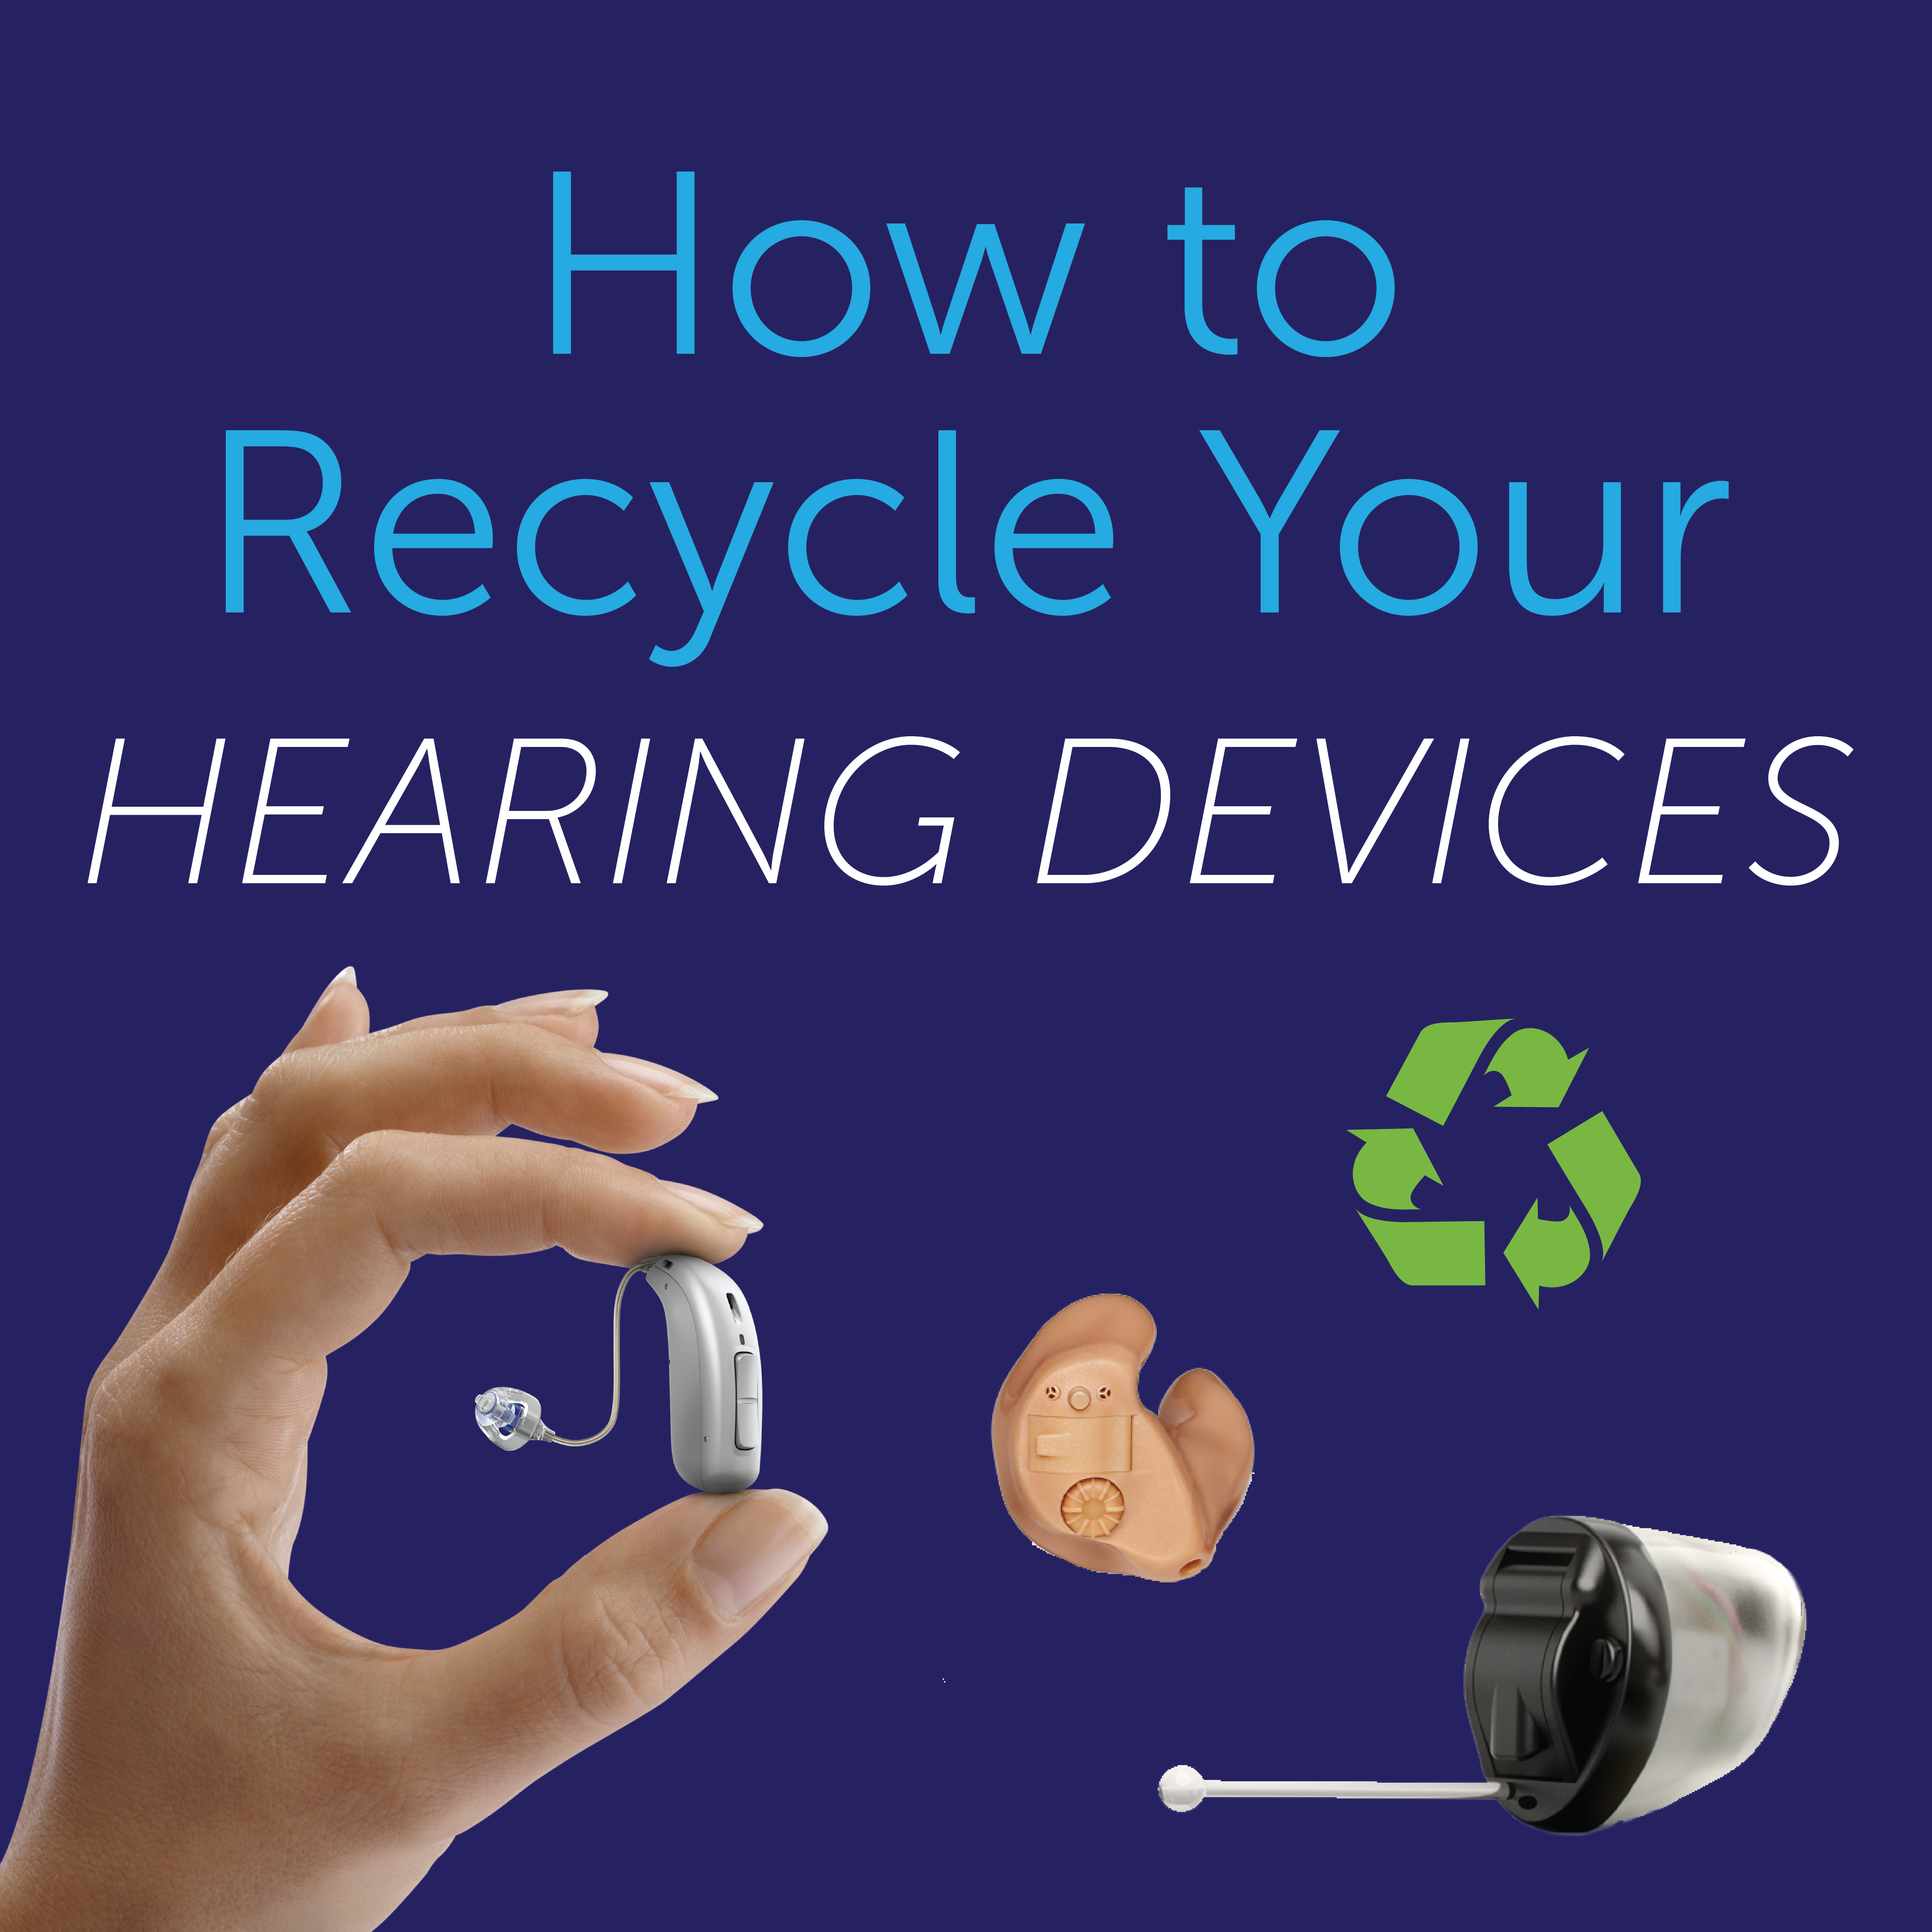 sewhc_recycle_hearing_devices_slide_print-01